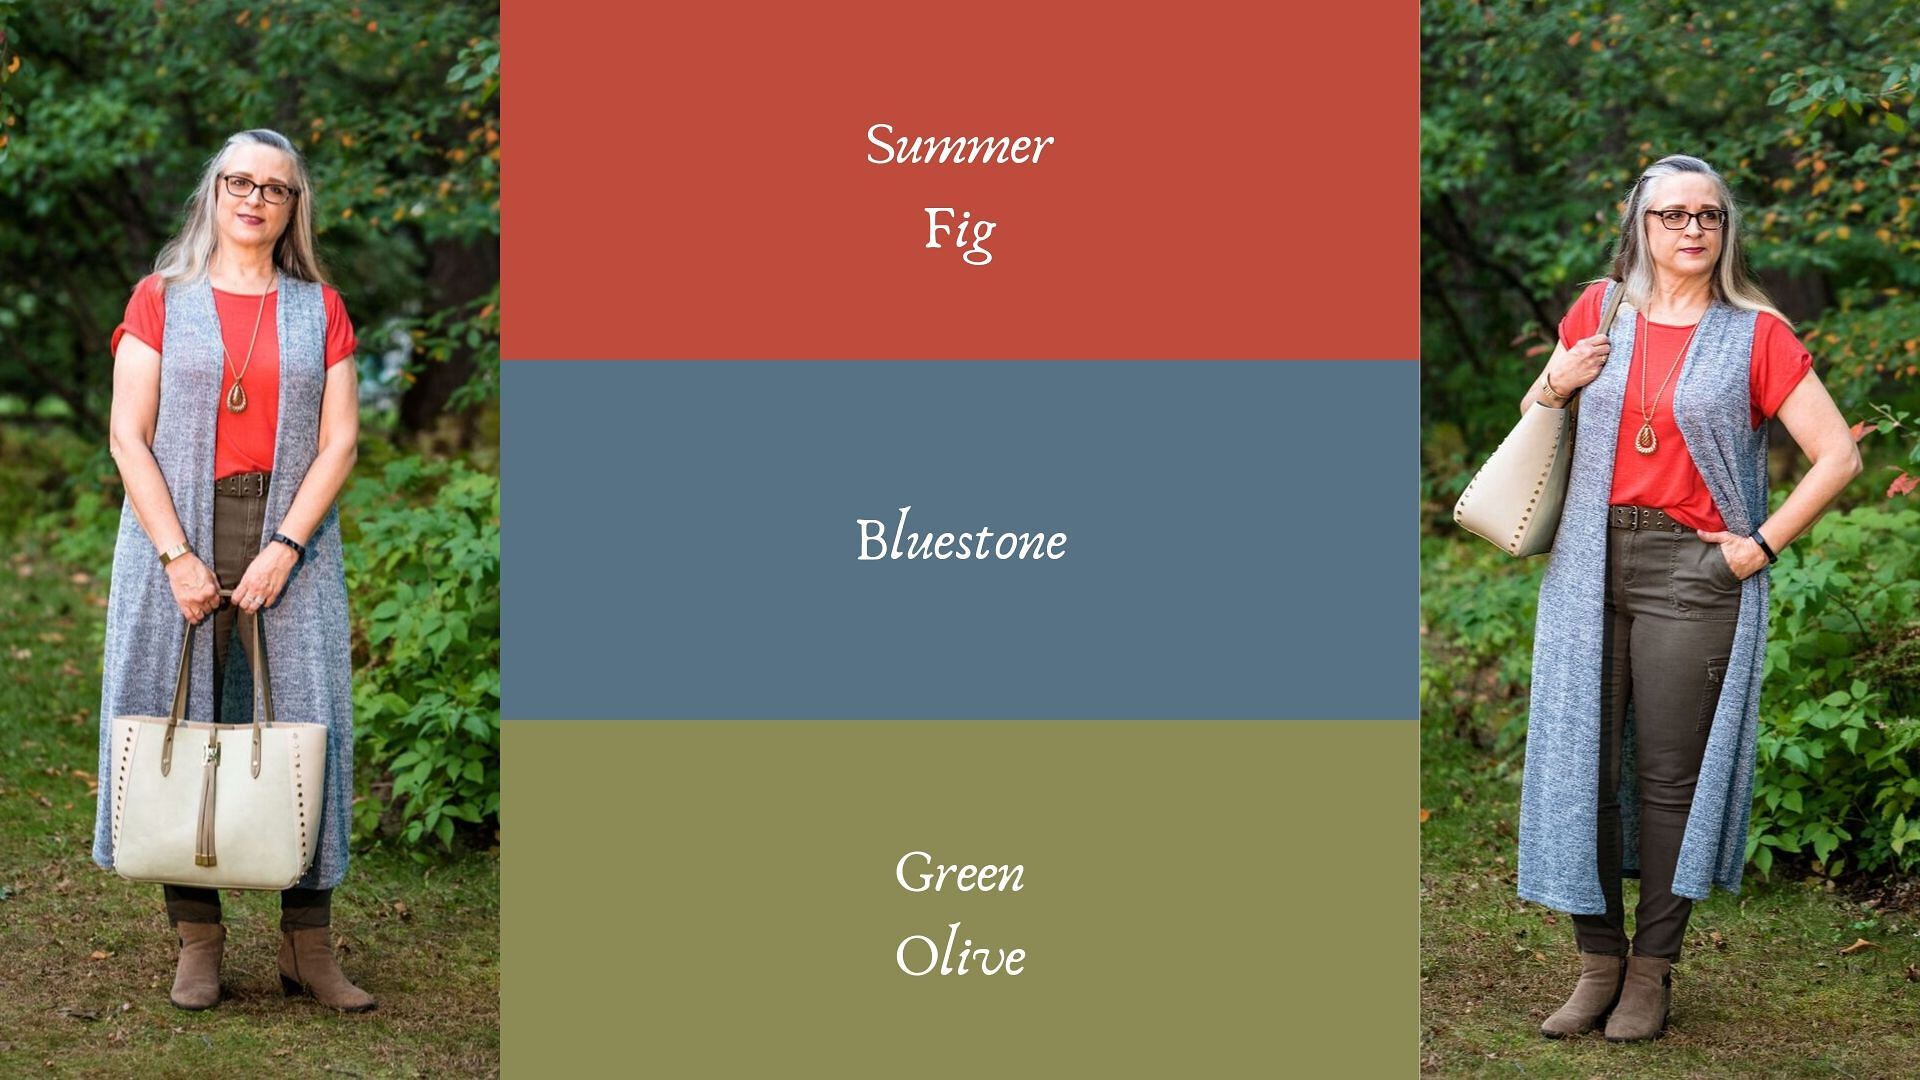 Pantone - Autumn/Winter - 2019 - Summer Fig and Bluestone